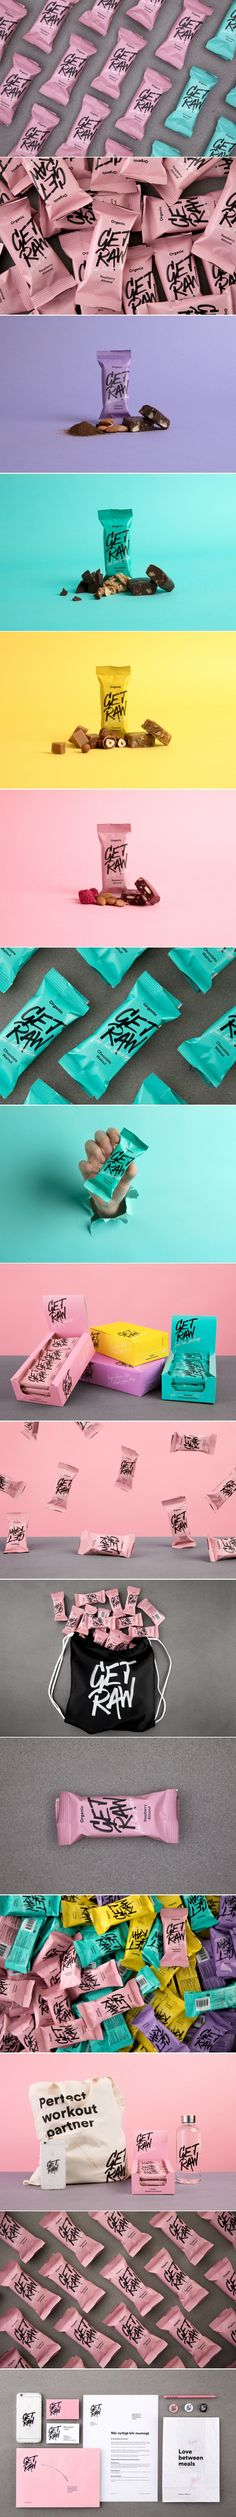 Get Raw is a Healthy Snack Bar With a Bold Color Scheme — The Dieline | Packaging & Branding Design & Innovation News